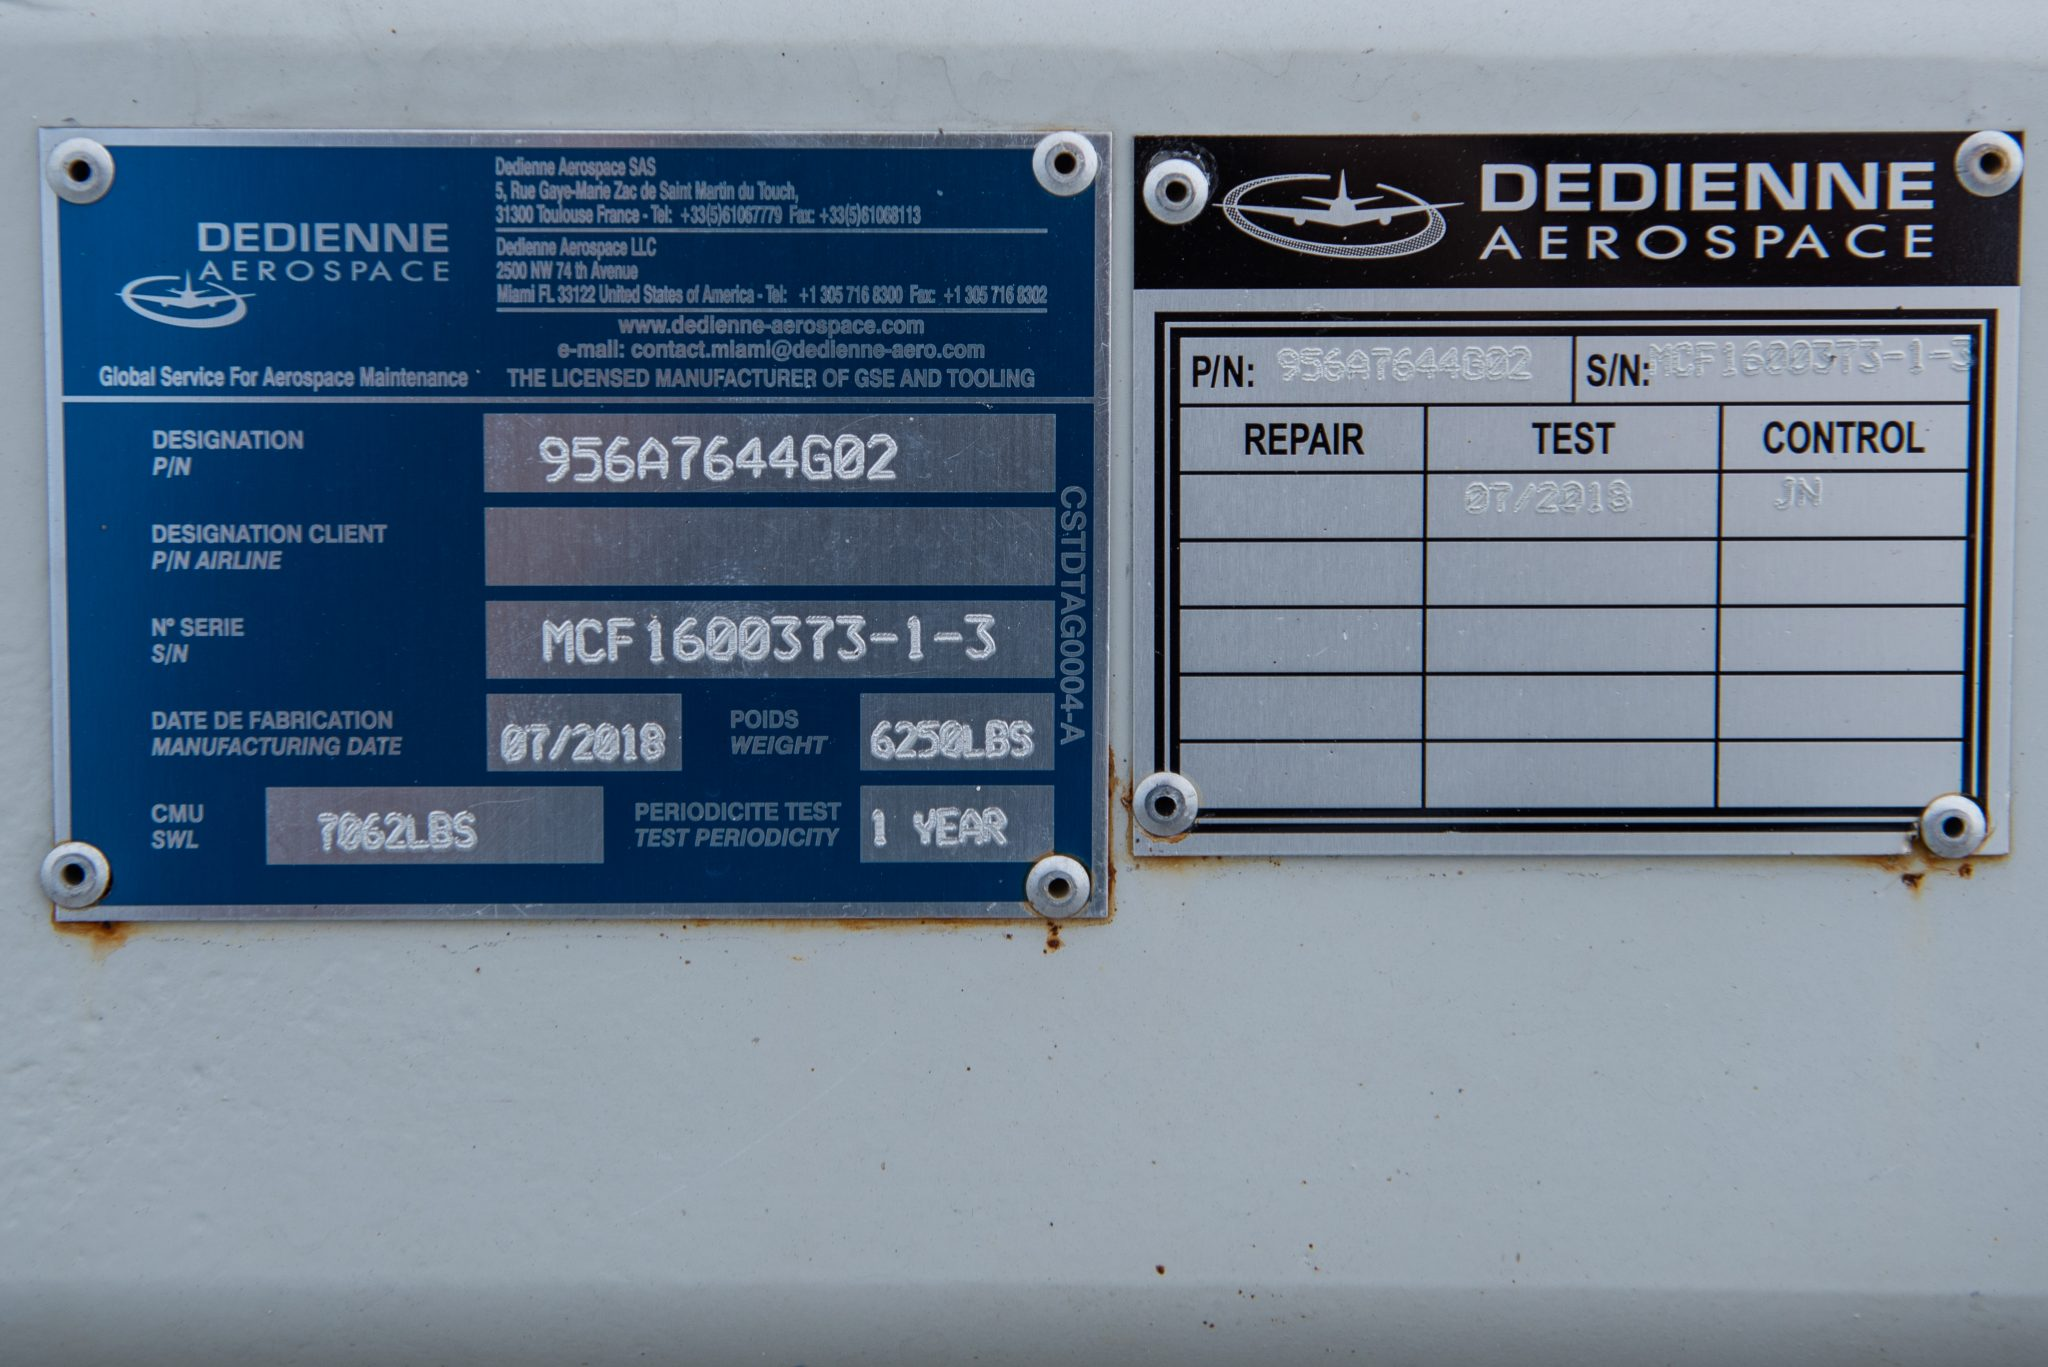 LEAP-1A serial number